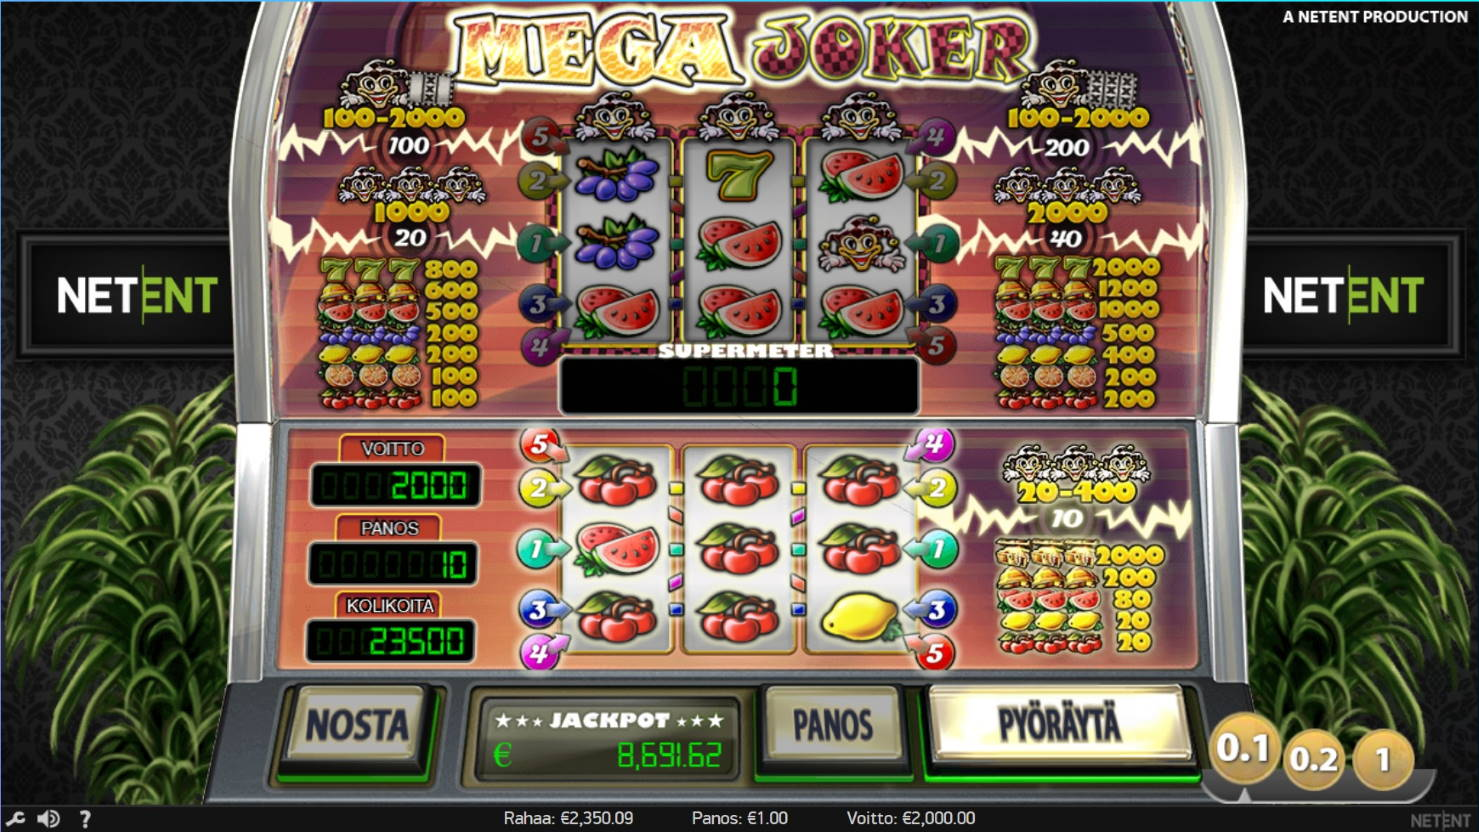 Mega Joker Big Win Picture By Steppeni